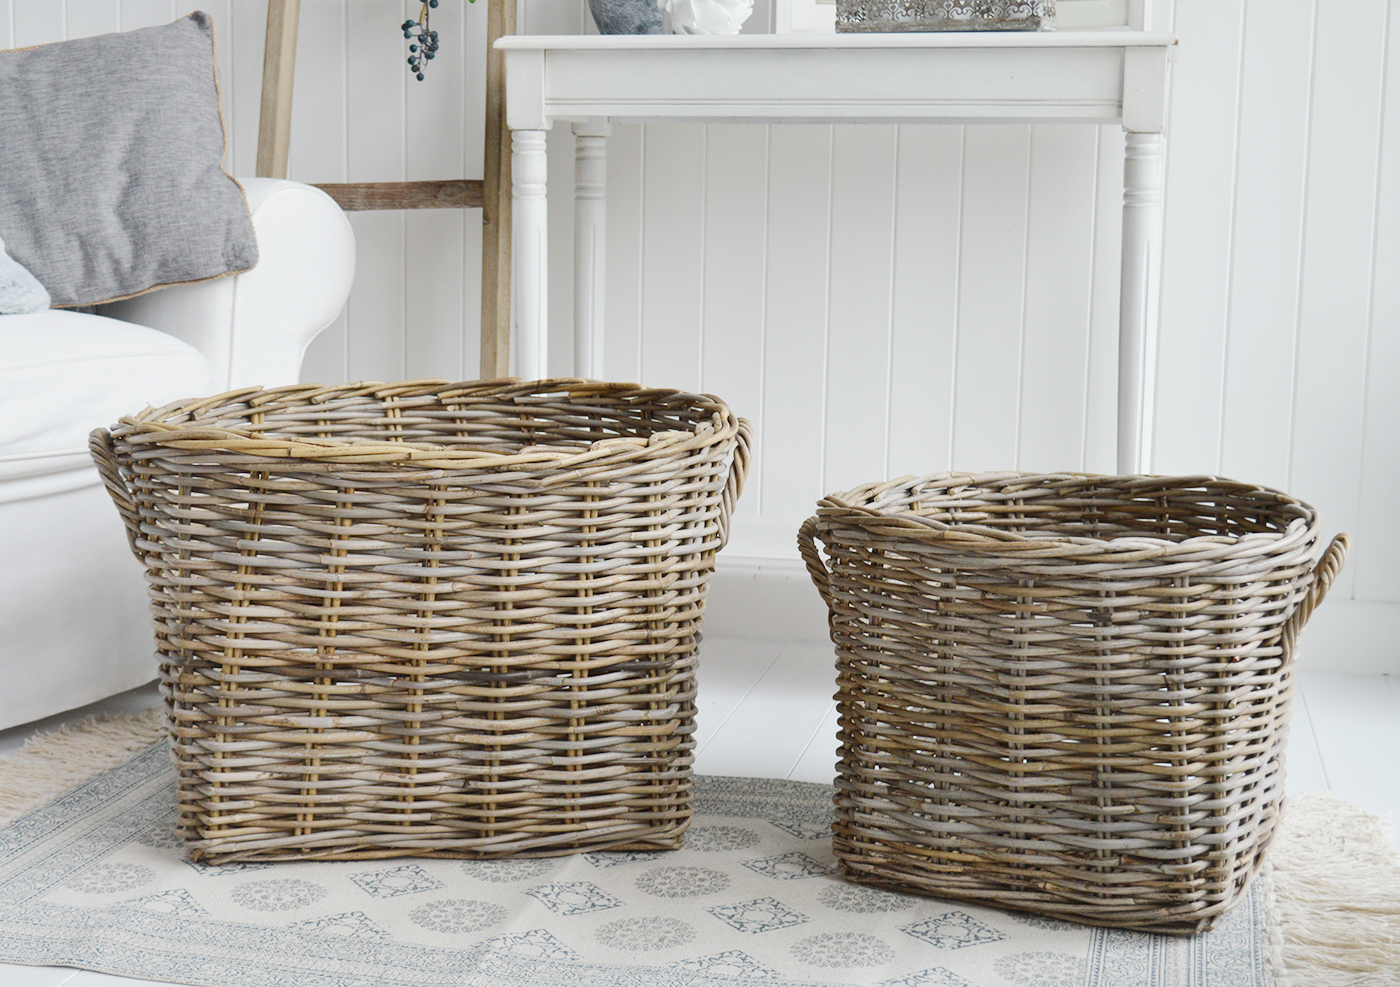 Casco Bay extra large Round basket with handles for logs, toys and everyday storage from The White Lighthouse Furniture and Home Interiors for New England, country, coastal and city homes for hallway, living room, bedroom and bathroom